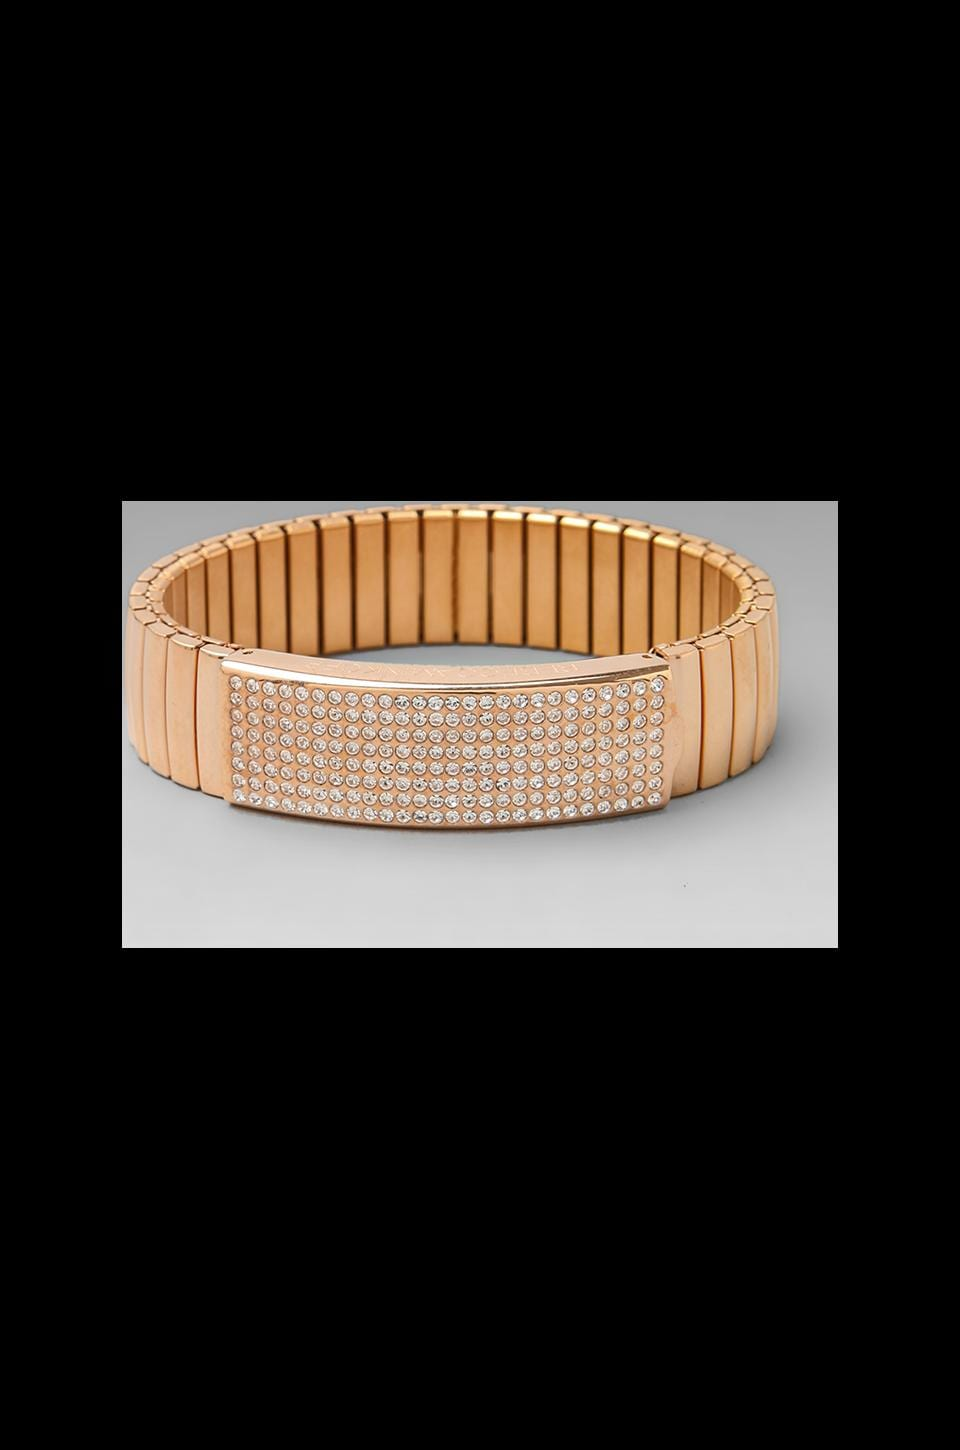 Rebecca Minkoff Pave Watch Band Bracelet in Rose Gold